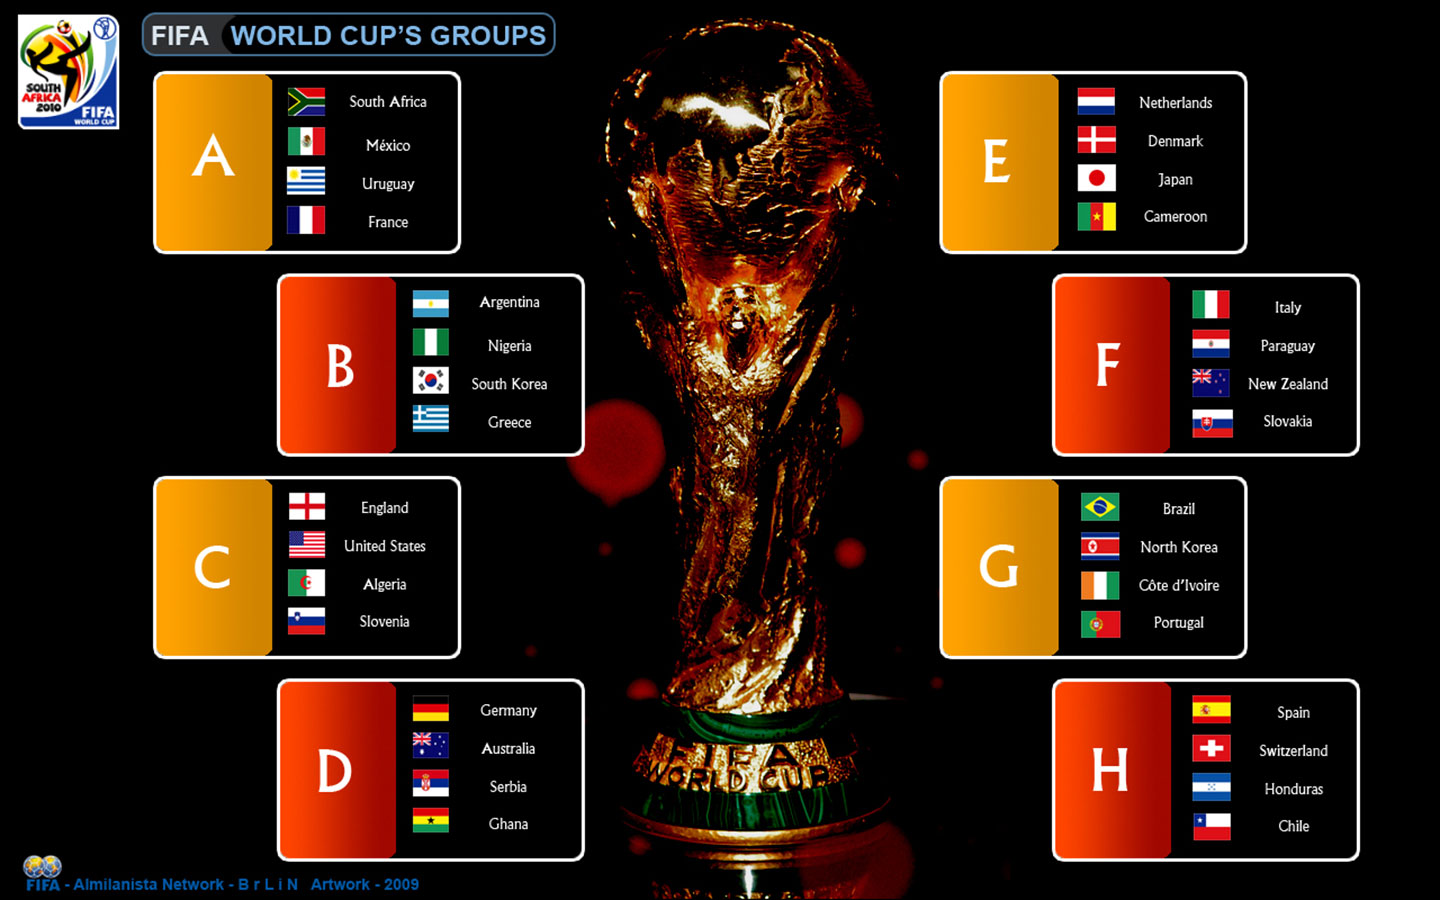 http://2.bp.blogspot.com/_JsYwnCmGKe4/TCSKndTmbNI/AAAAAAAAAX8/ybeCYW-YyD0/s1600/FIFA-World-Cup-2010-Groups-Widescreen-Wallpaper.jpg